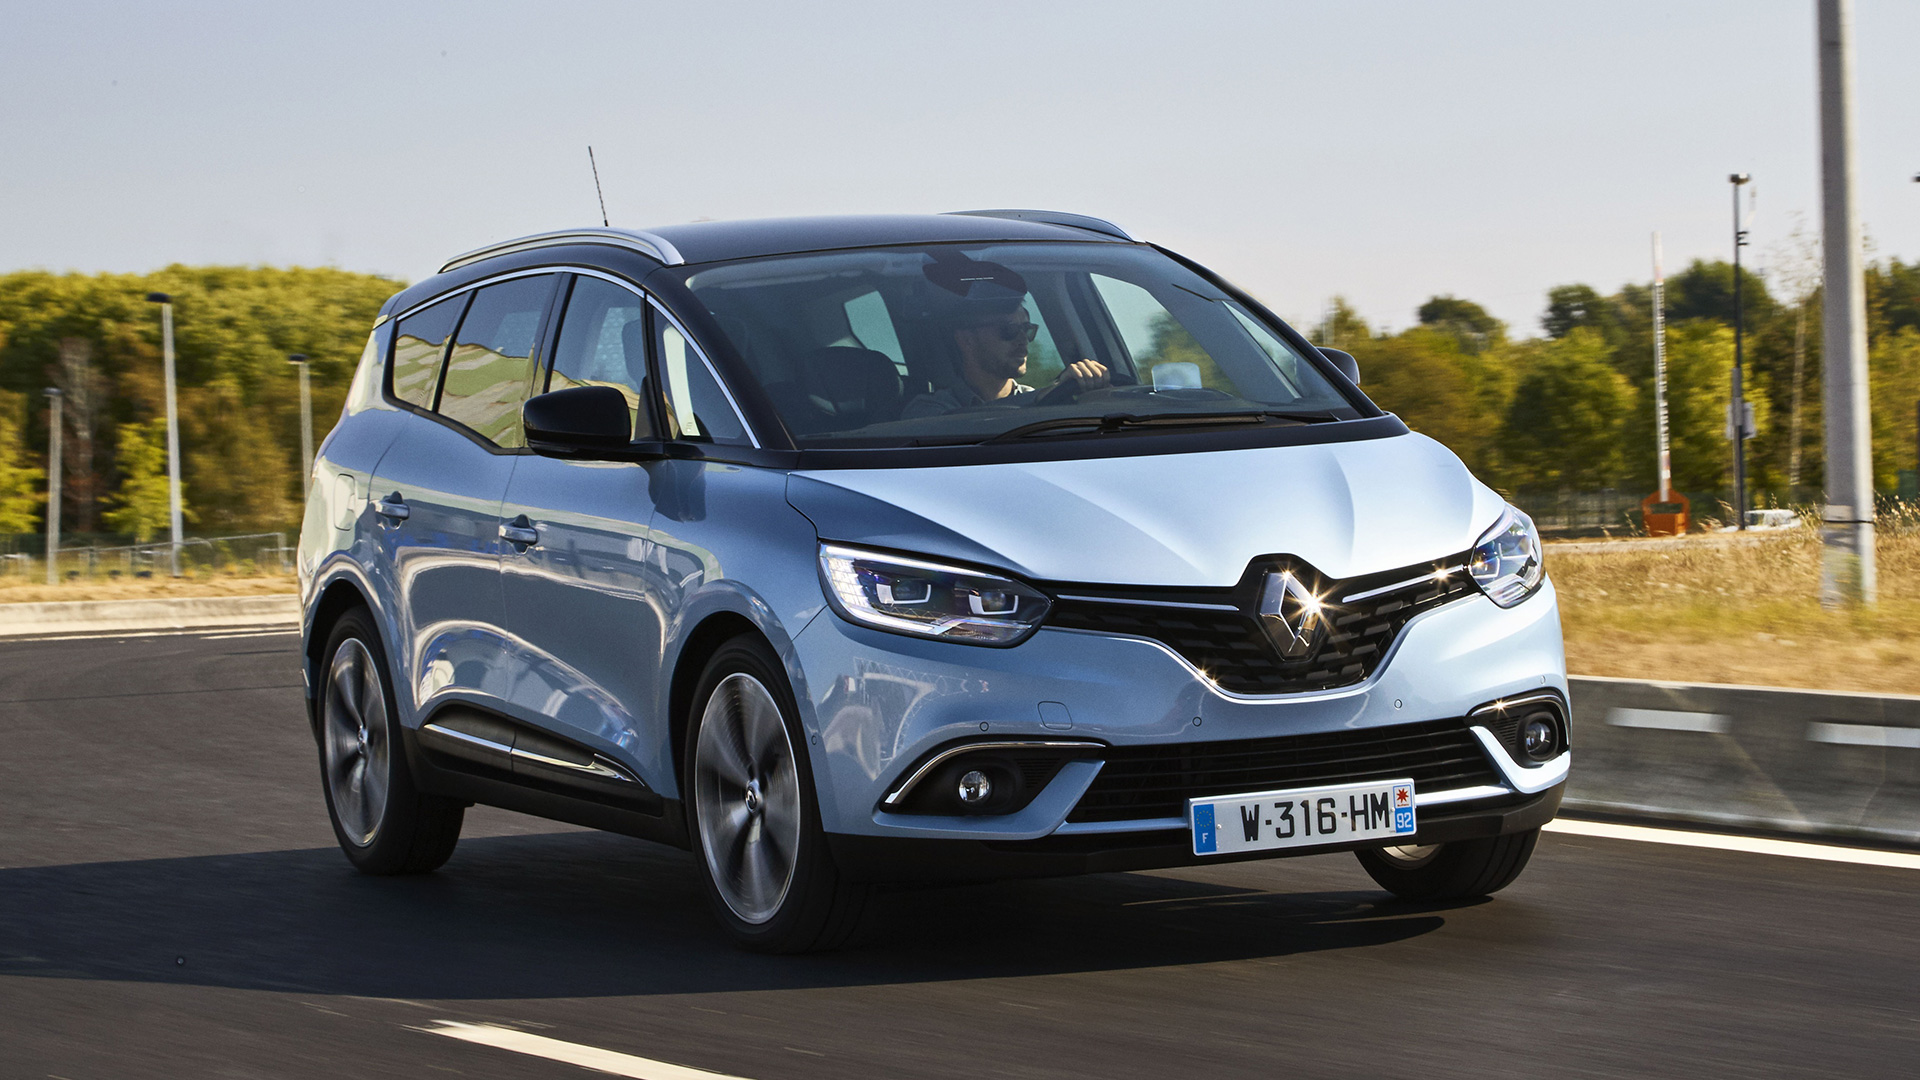 Auto Trader Vans For Sale >> 2016 Renault Grand Scenic first drive review   Auto Trader UK